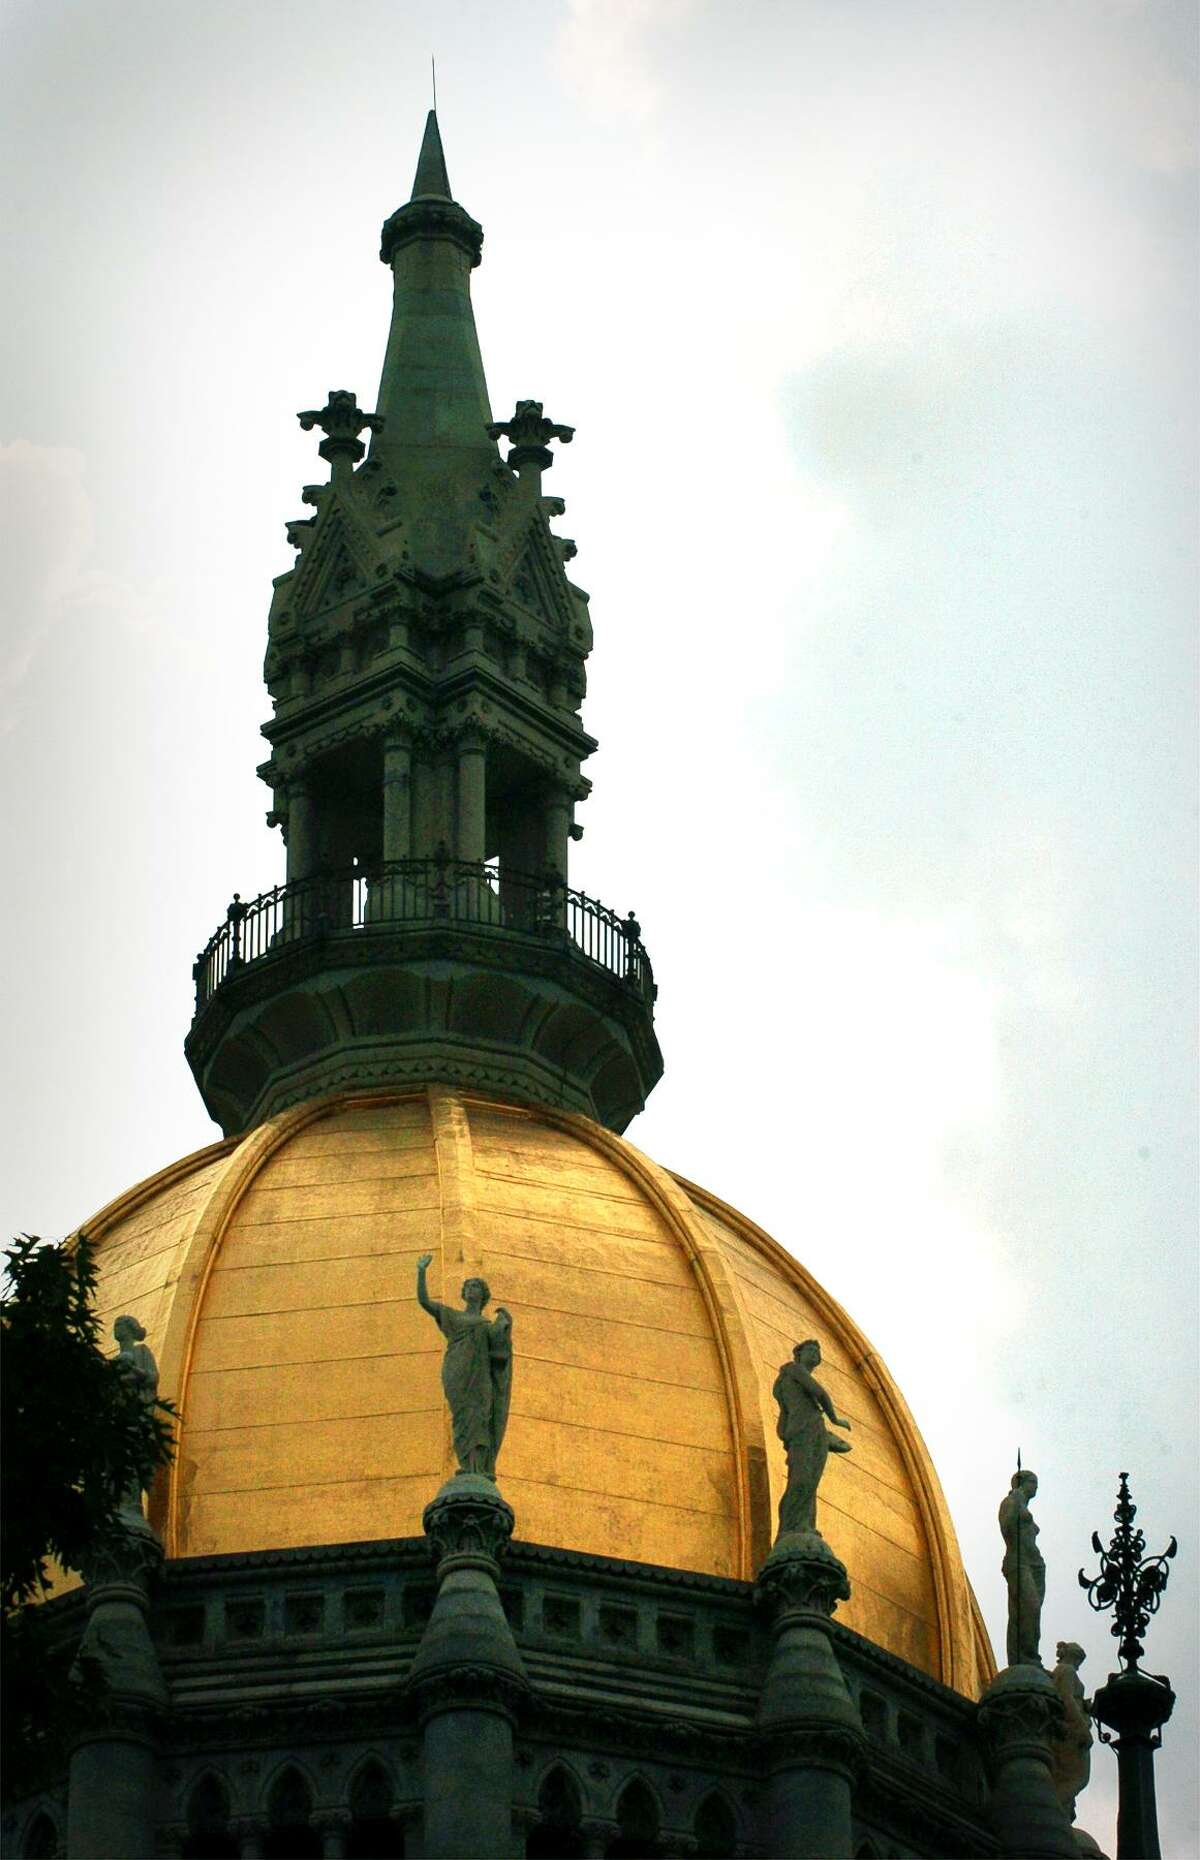 Can you name any of the nine muses, the statutes of goddess figures the daughters of Zeus and Mnemosyne, around the base of the Connecticut State Capitol dome? Then you could be a winner of the Hearst CT Media trivia contest on Thursday, September 6, in the Hall Full Brewery in Stamford.